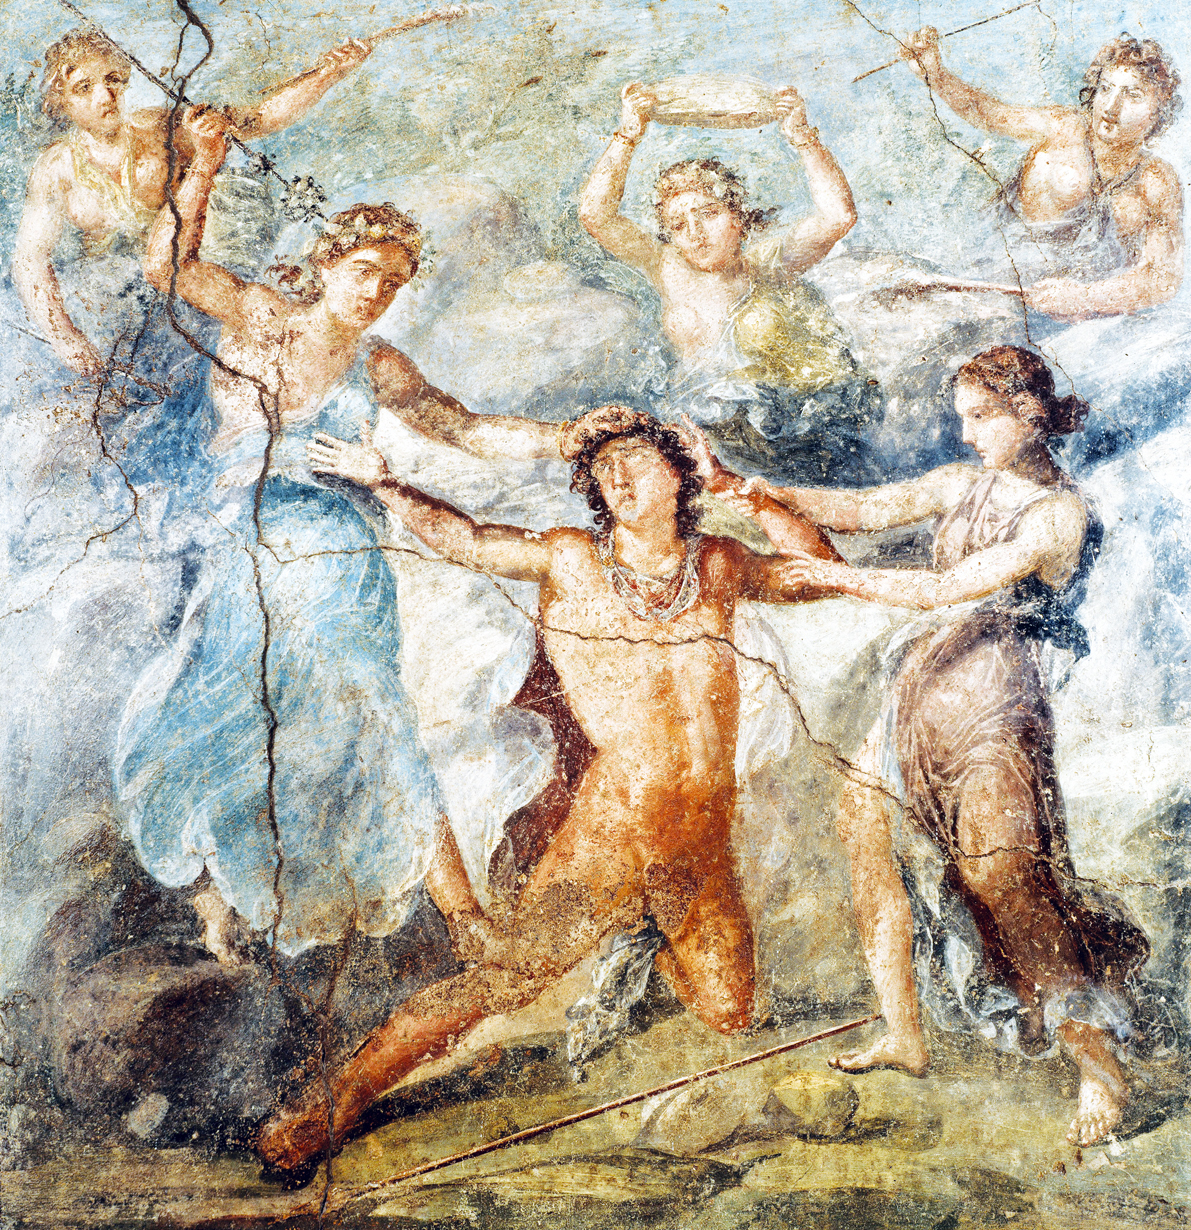 . The Death of Pentheus, fresco in Casa dei Vettii, Pompeii, Italy, c. 79.